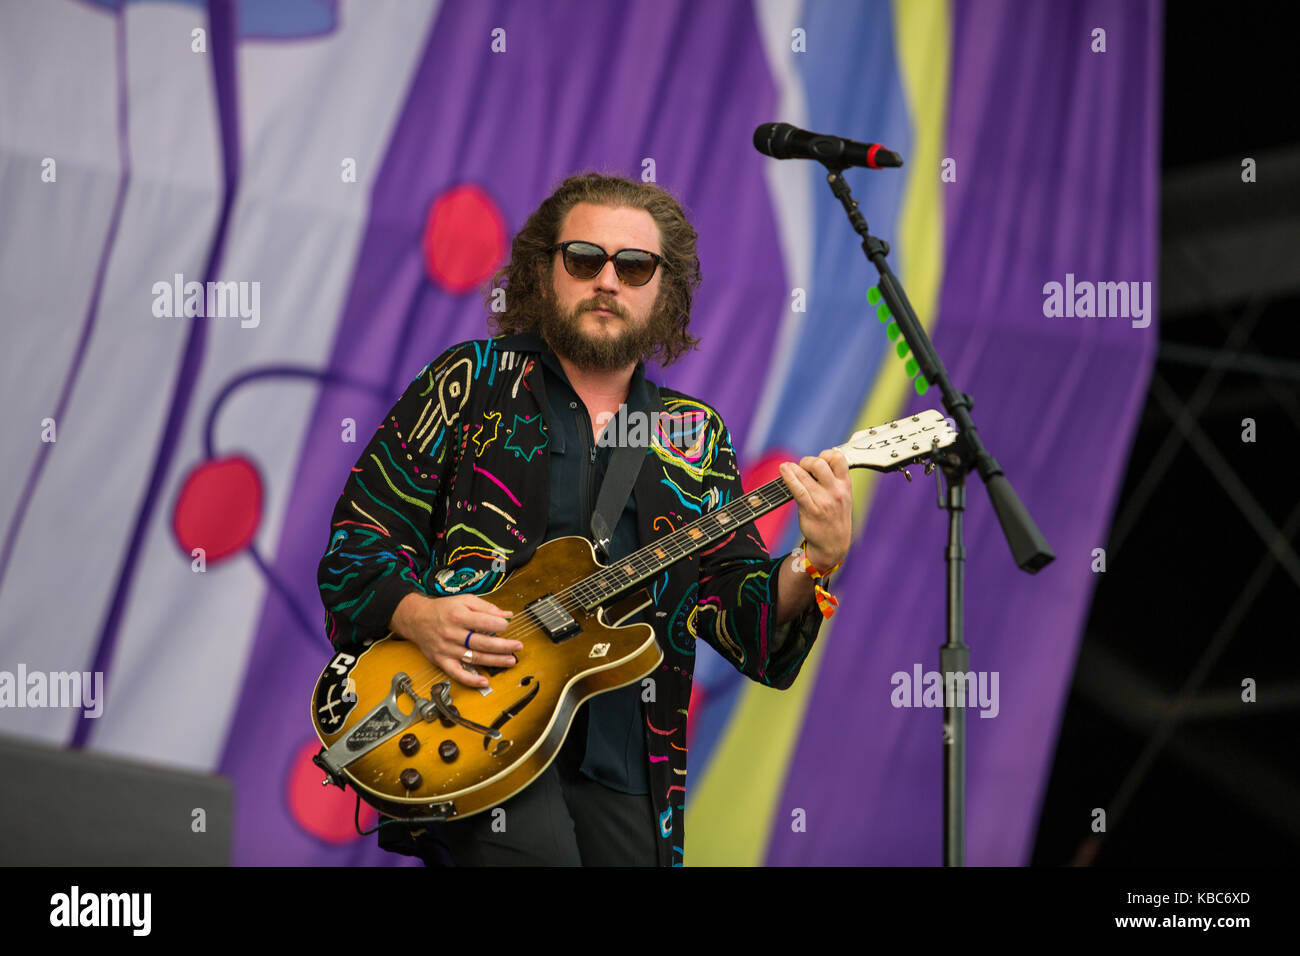 The American rock band My Morning Jacket performs a live concert at the music festival Lollapalooza 2015 in Berlin. - Stock Image